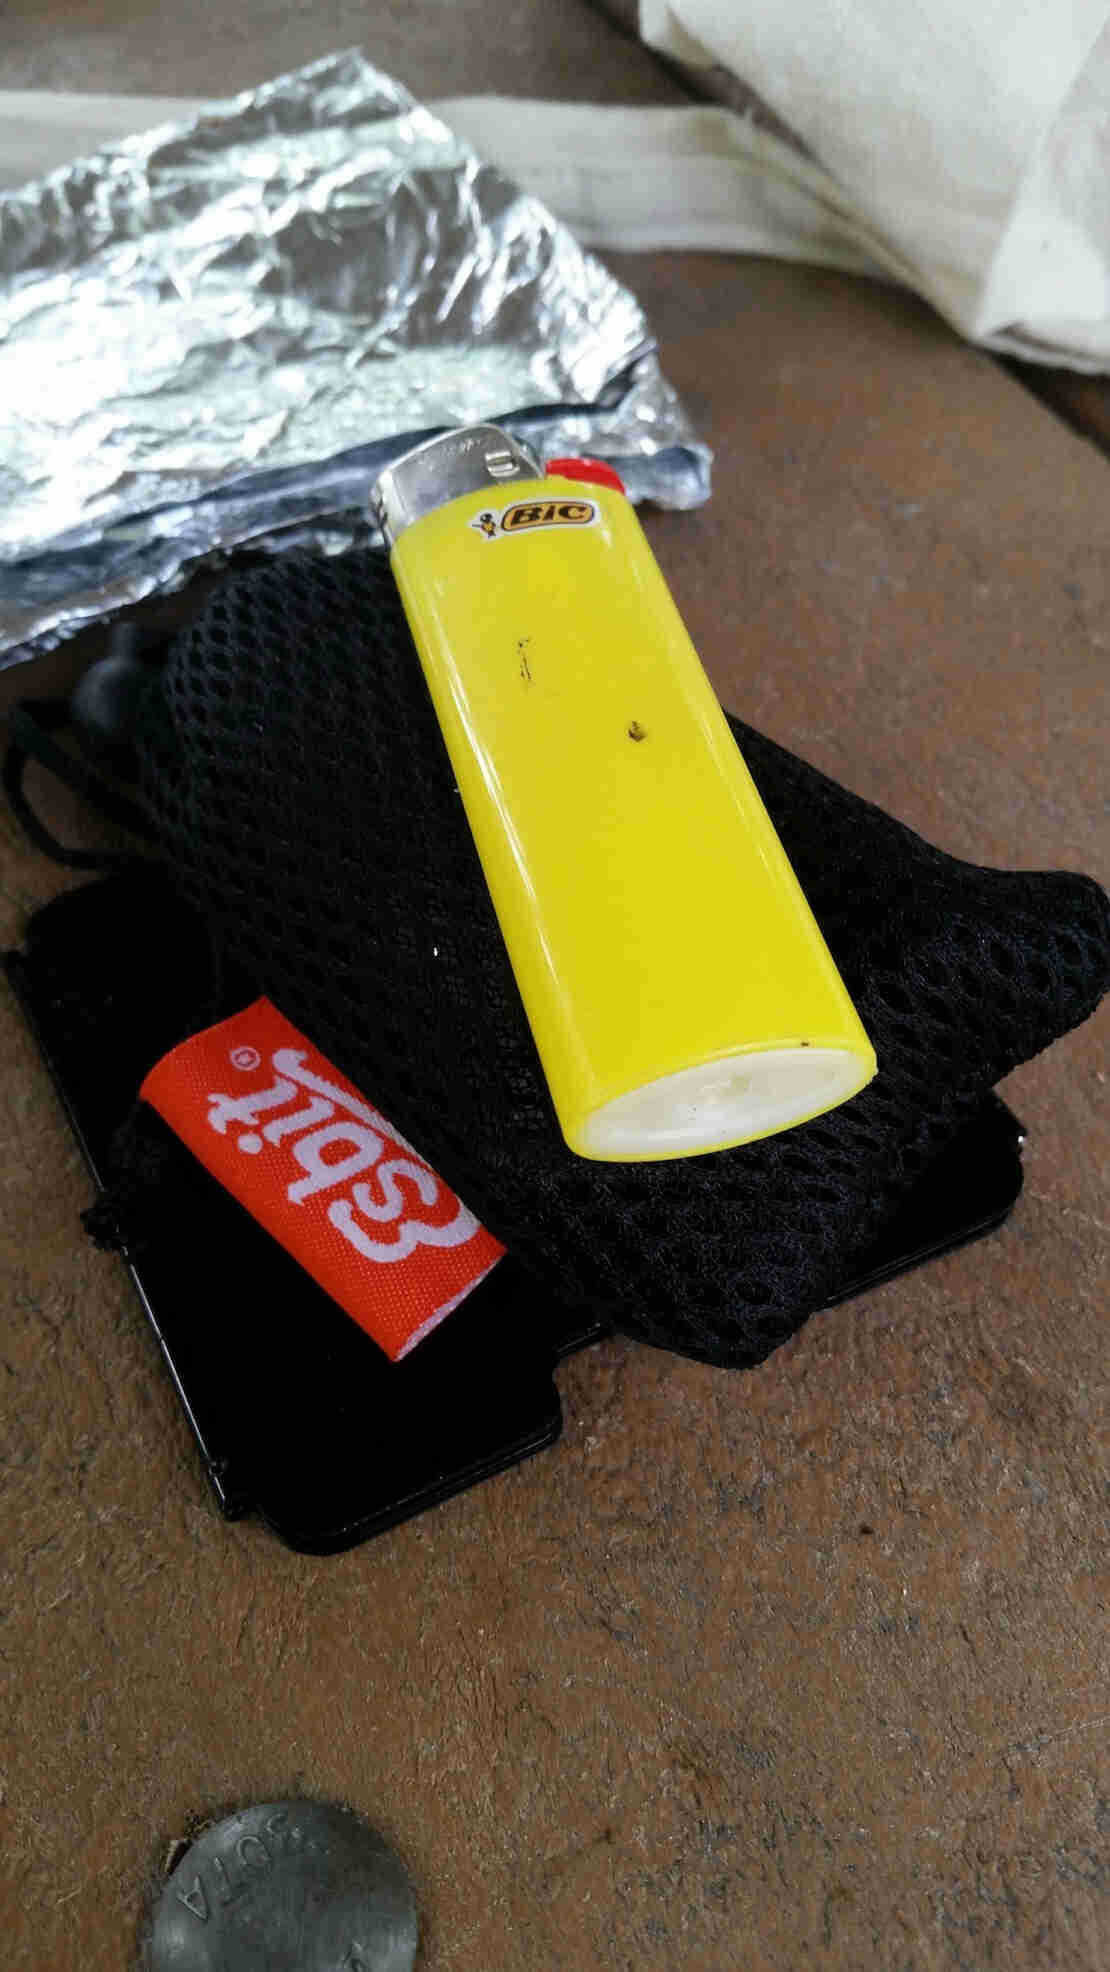 Close up view of a yellow Bic lighter on top of a black mesh sack, with foil in the background